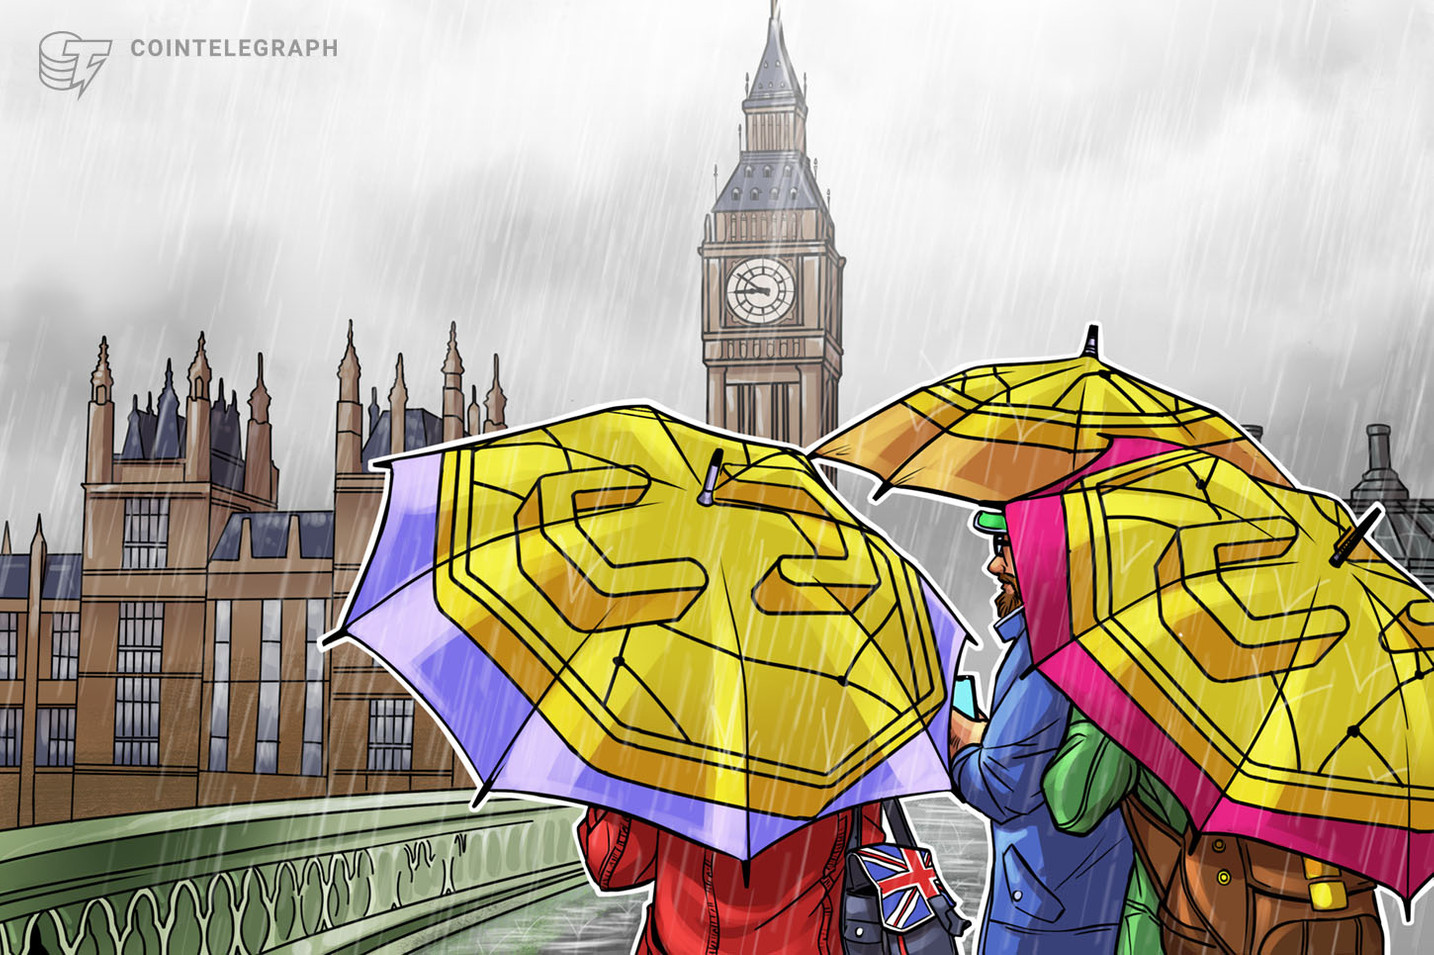 Bank of England talks negative interest rates in best 'ad' for Bitcoin